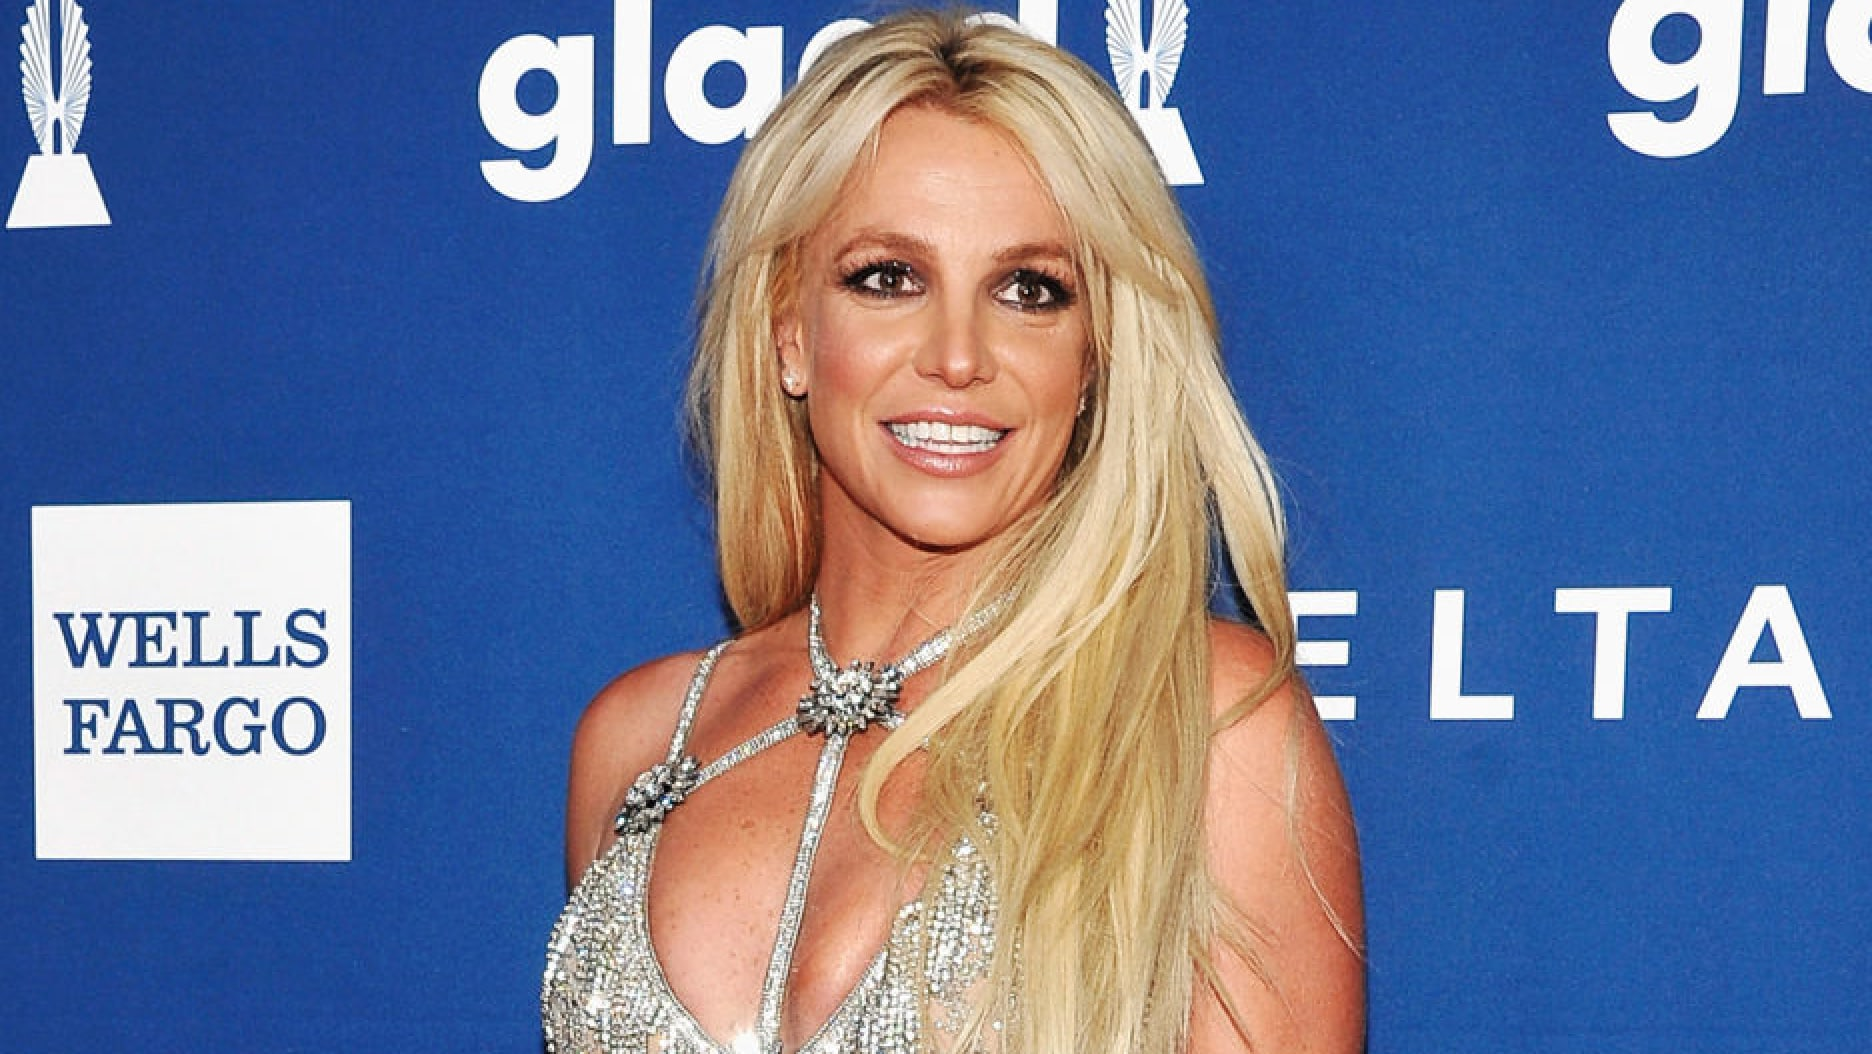 Britney Spears' Attorney Files for the Removal of Jaime Spears from Conservatorship